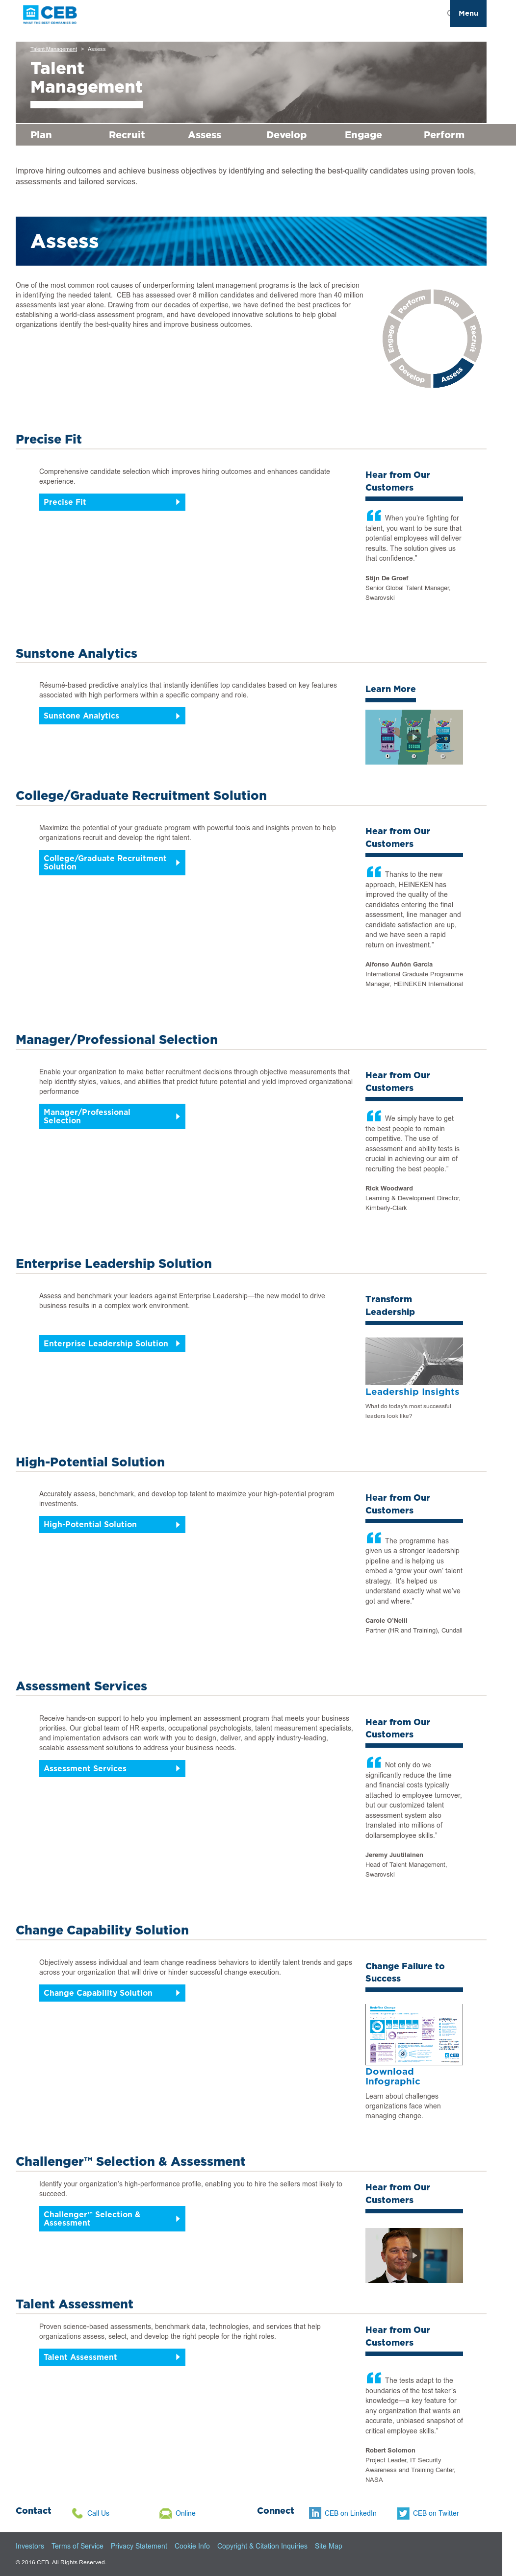 SHL Competitors, Revenue and Employees - Owler Company Profile